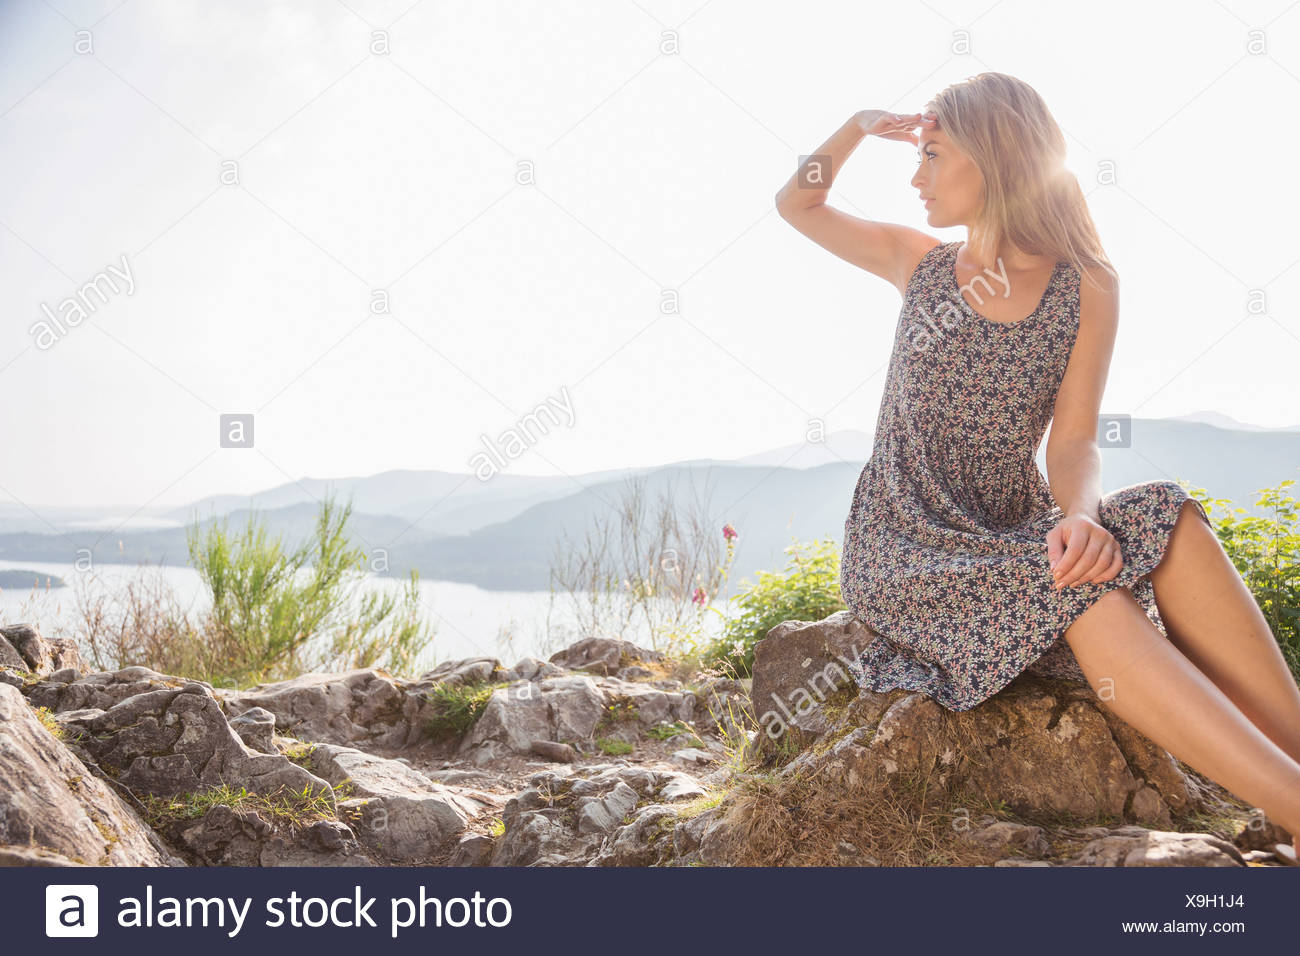 Young woman sitting on rocks shielding eyes - Stock Image